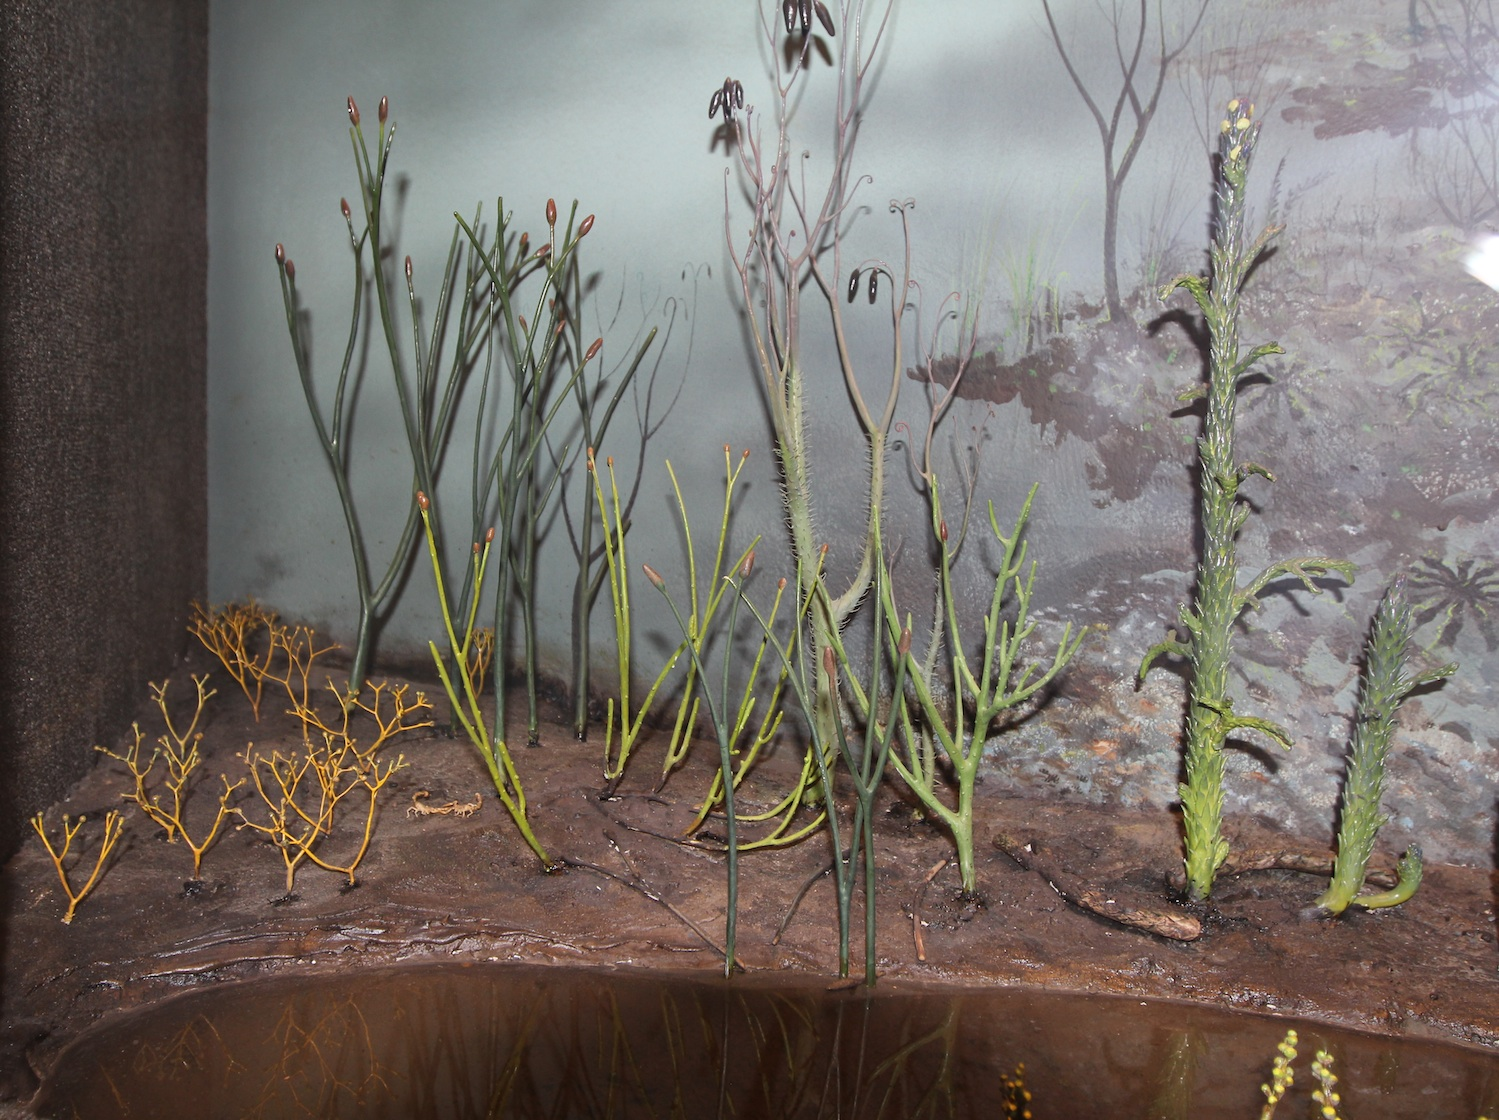 Milwaukee Public Museum's diorama of the early colonization of land during the Silurian bygroups of some of the first land plants.